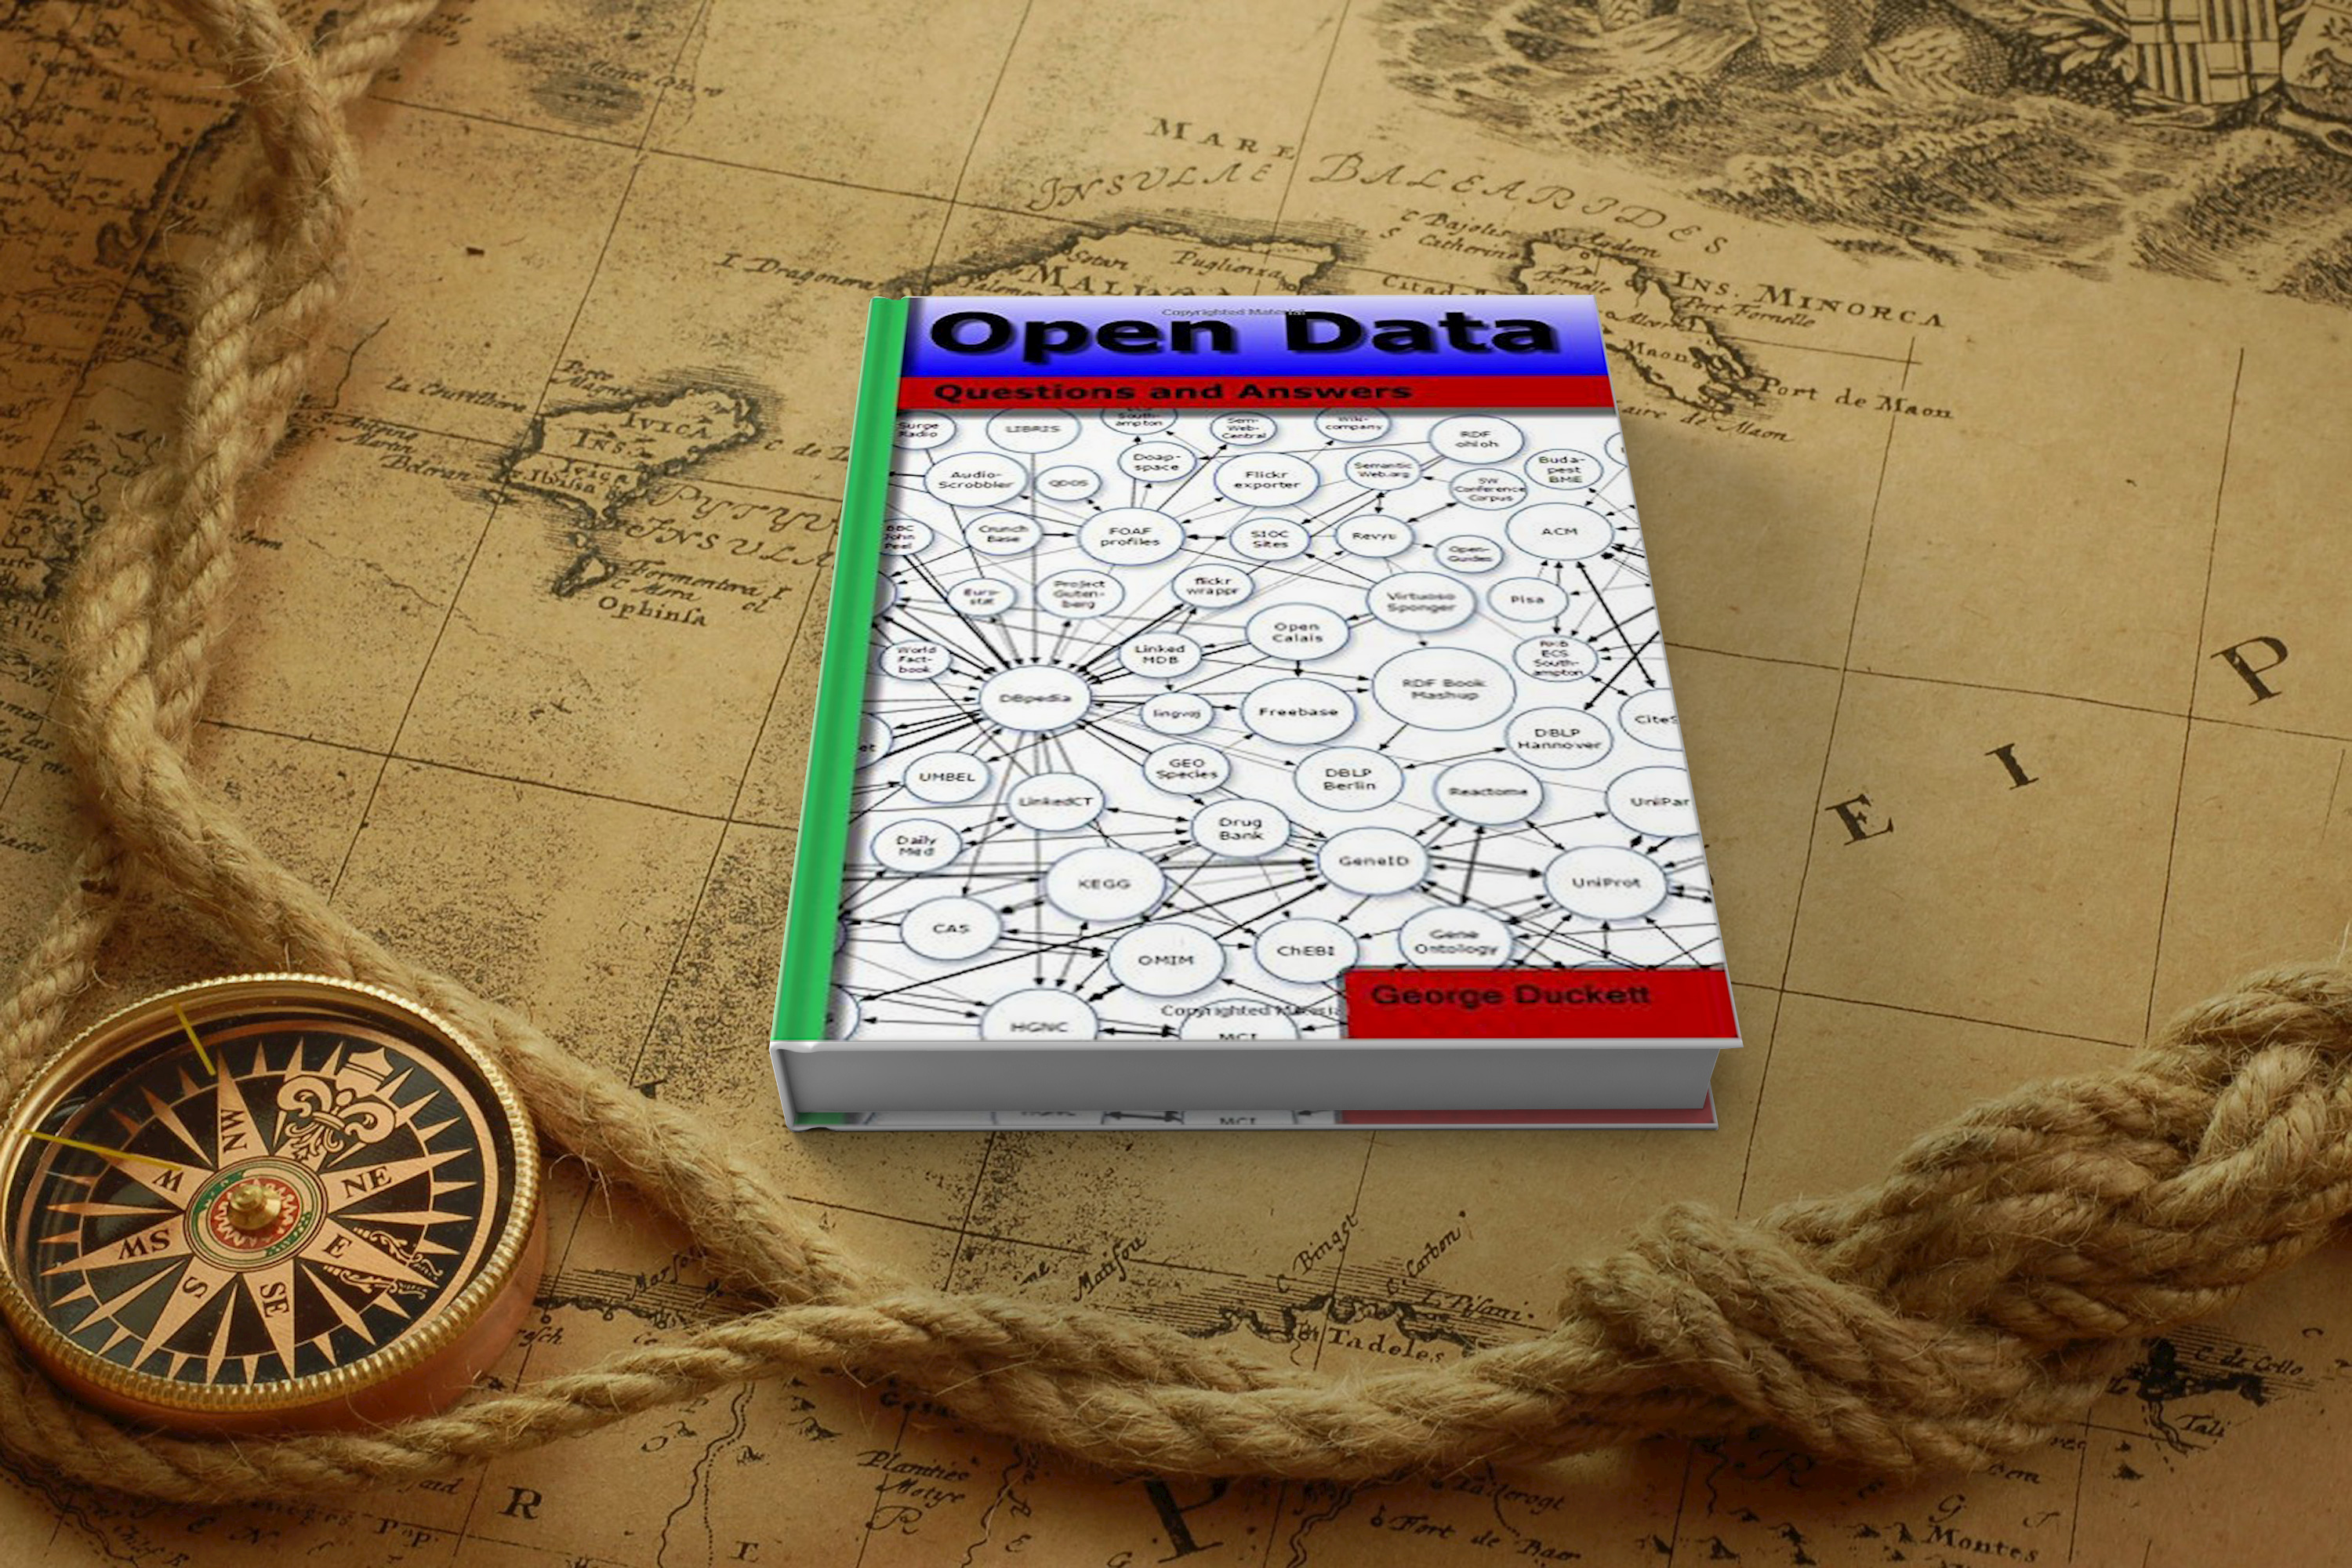 Open Data: Questions and Answers